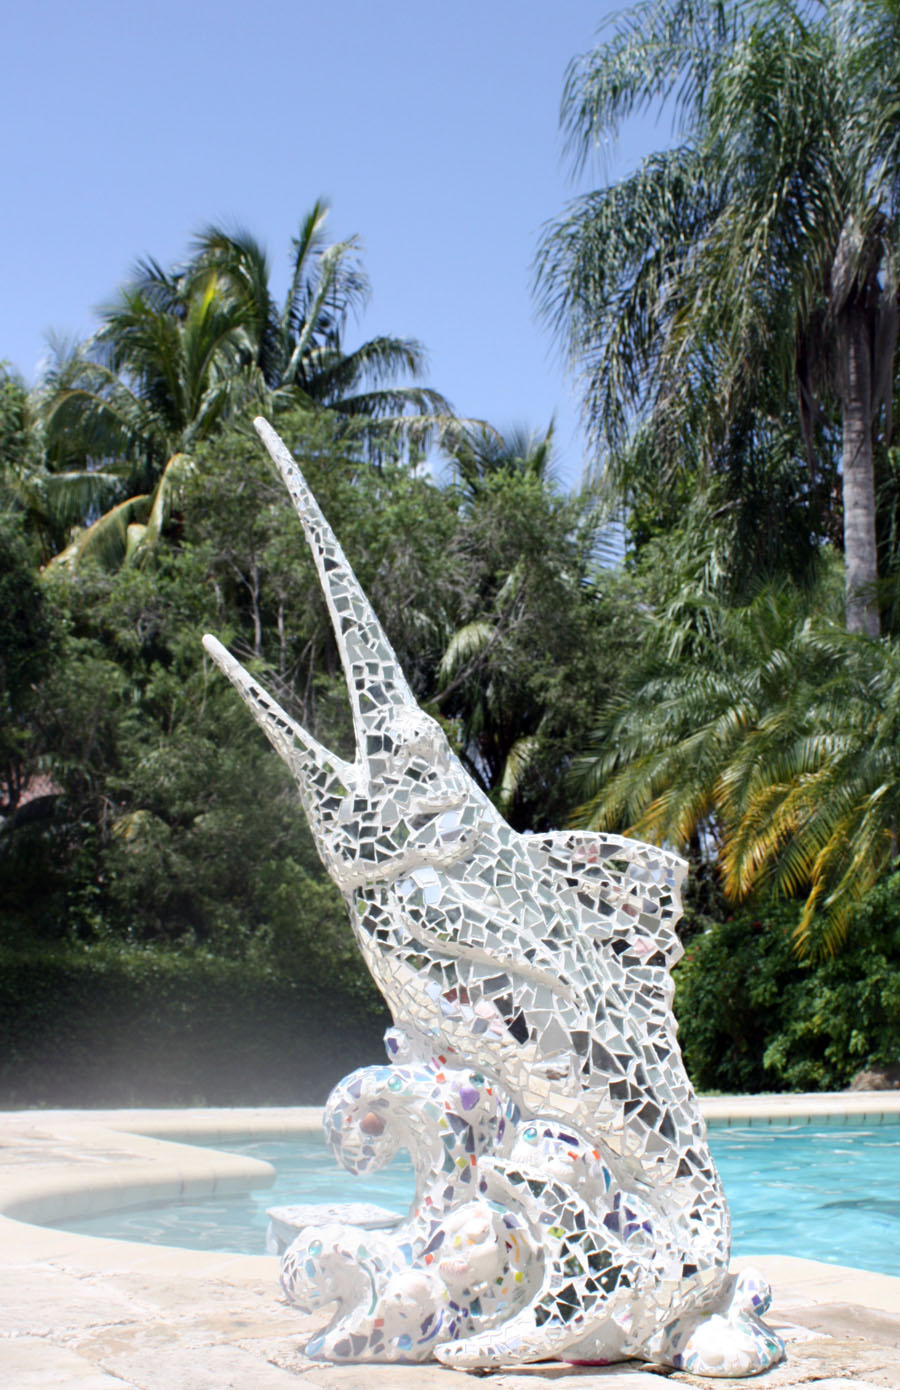 Mirrored Glass Mosaic Marlin.jpg